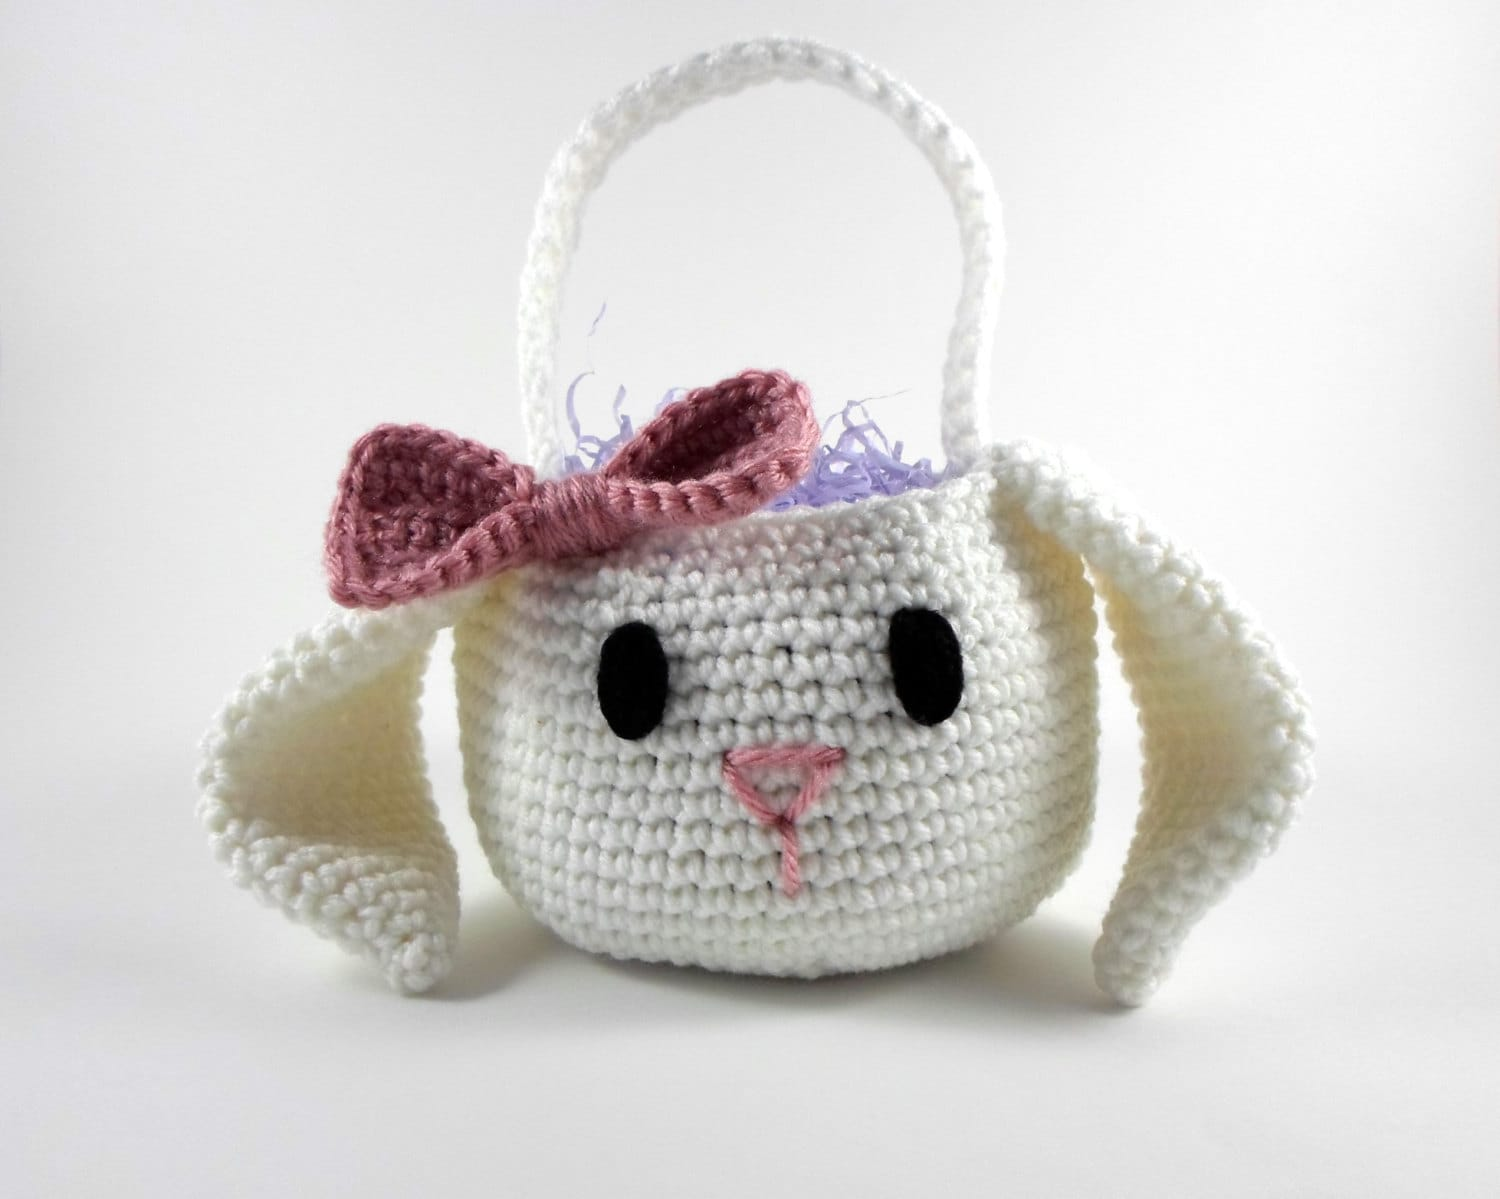 Free Crochet Patterns For Easter Gifts : Easter Bunny Basket Crochet Easter Basket Bunny by ...